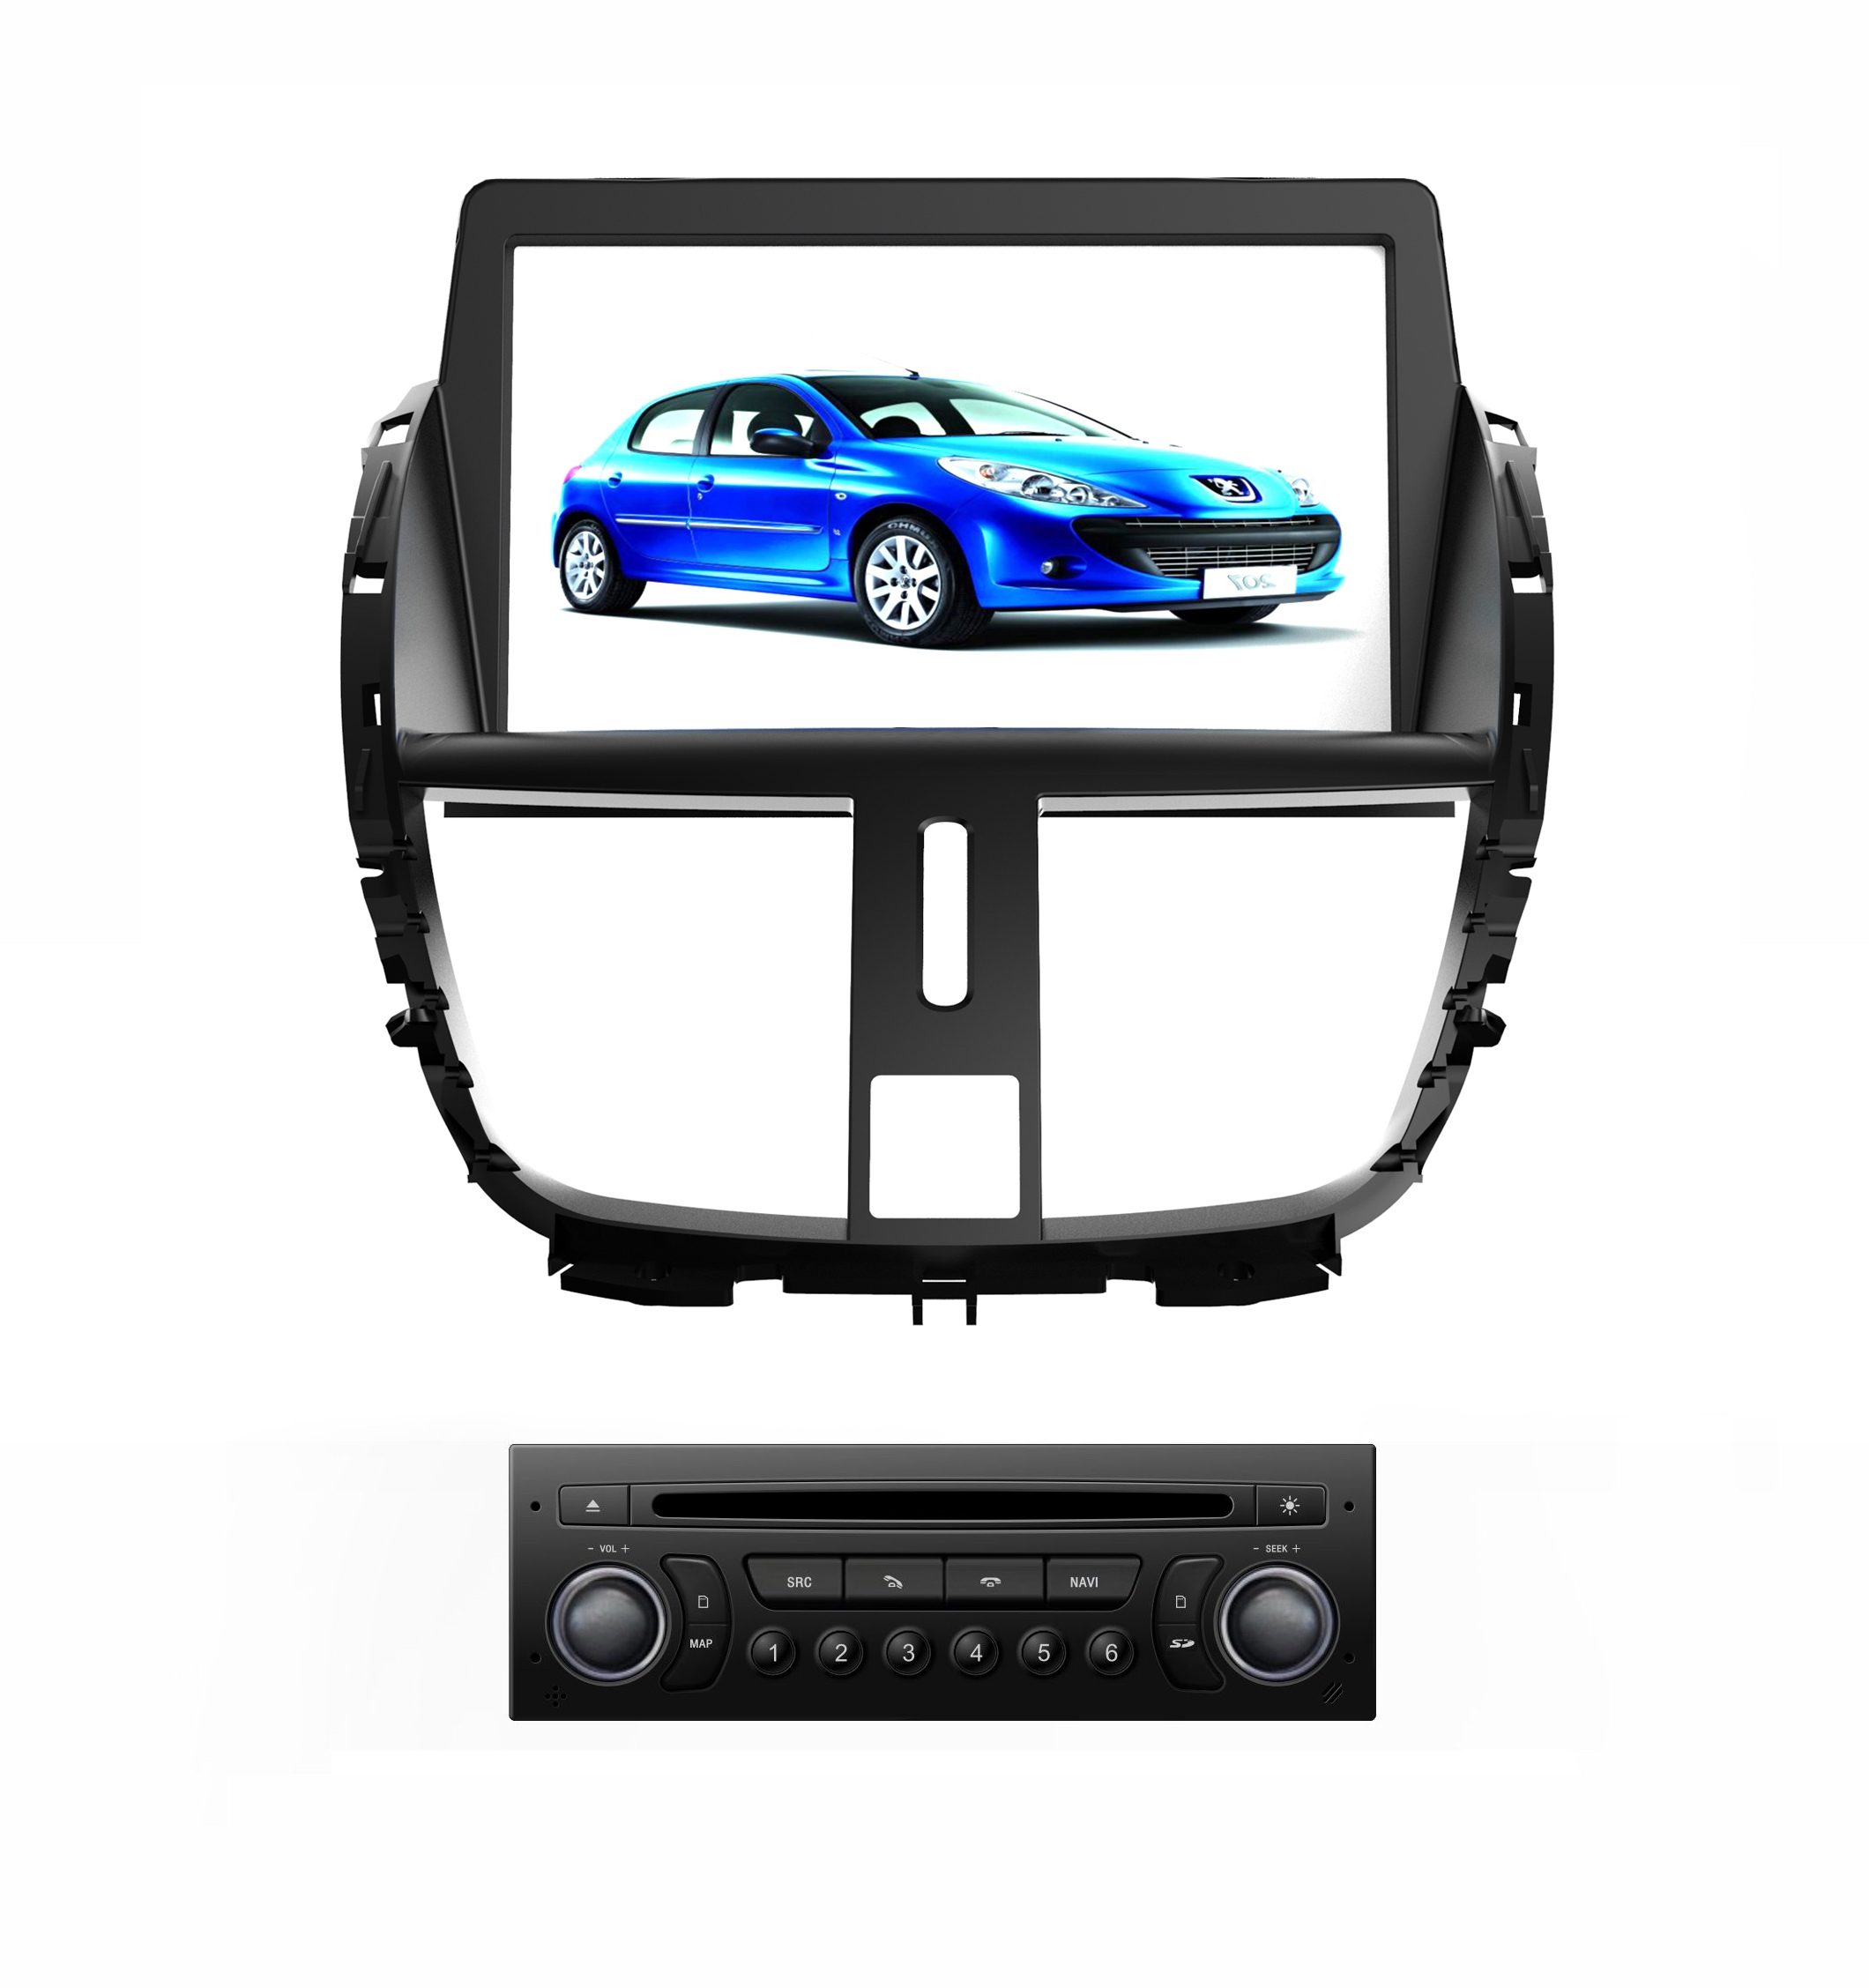 Autoradio AGW92 GPS DVD CD Bluetooth USB SD pour PEUGEOT 207 (processeur 1GHZ)